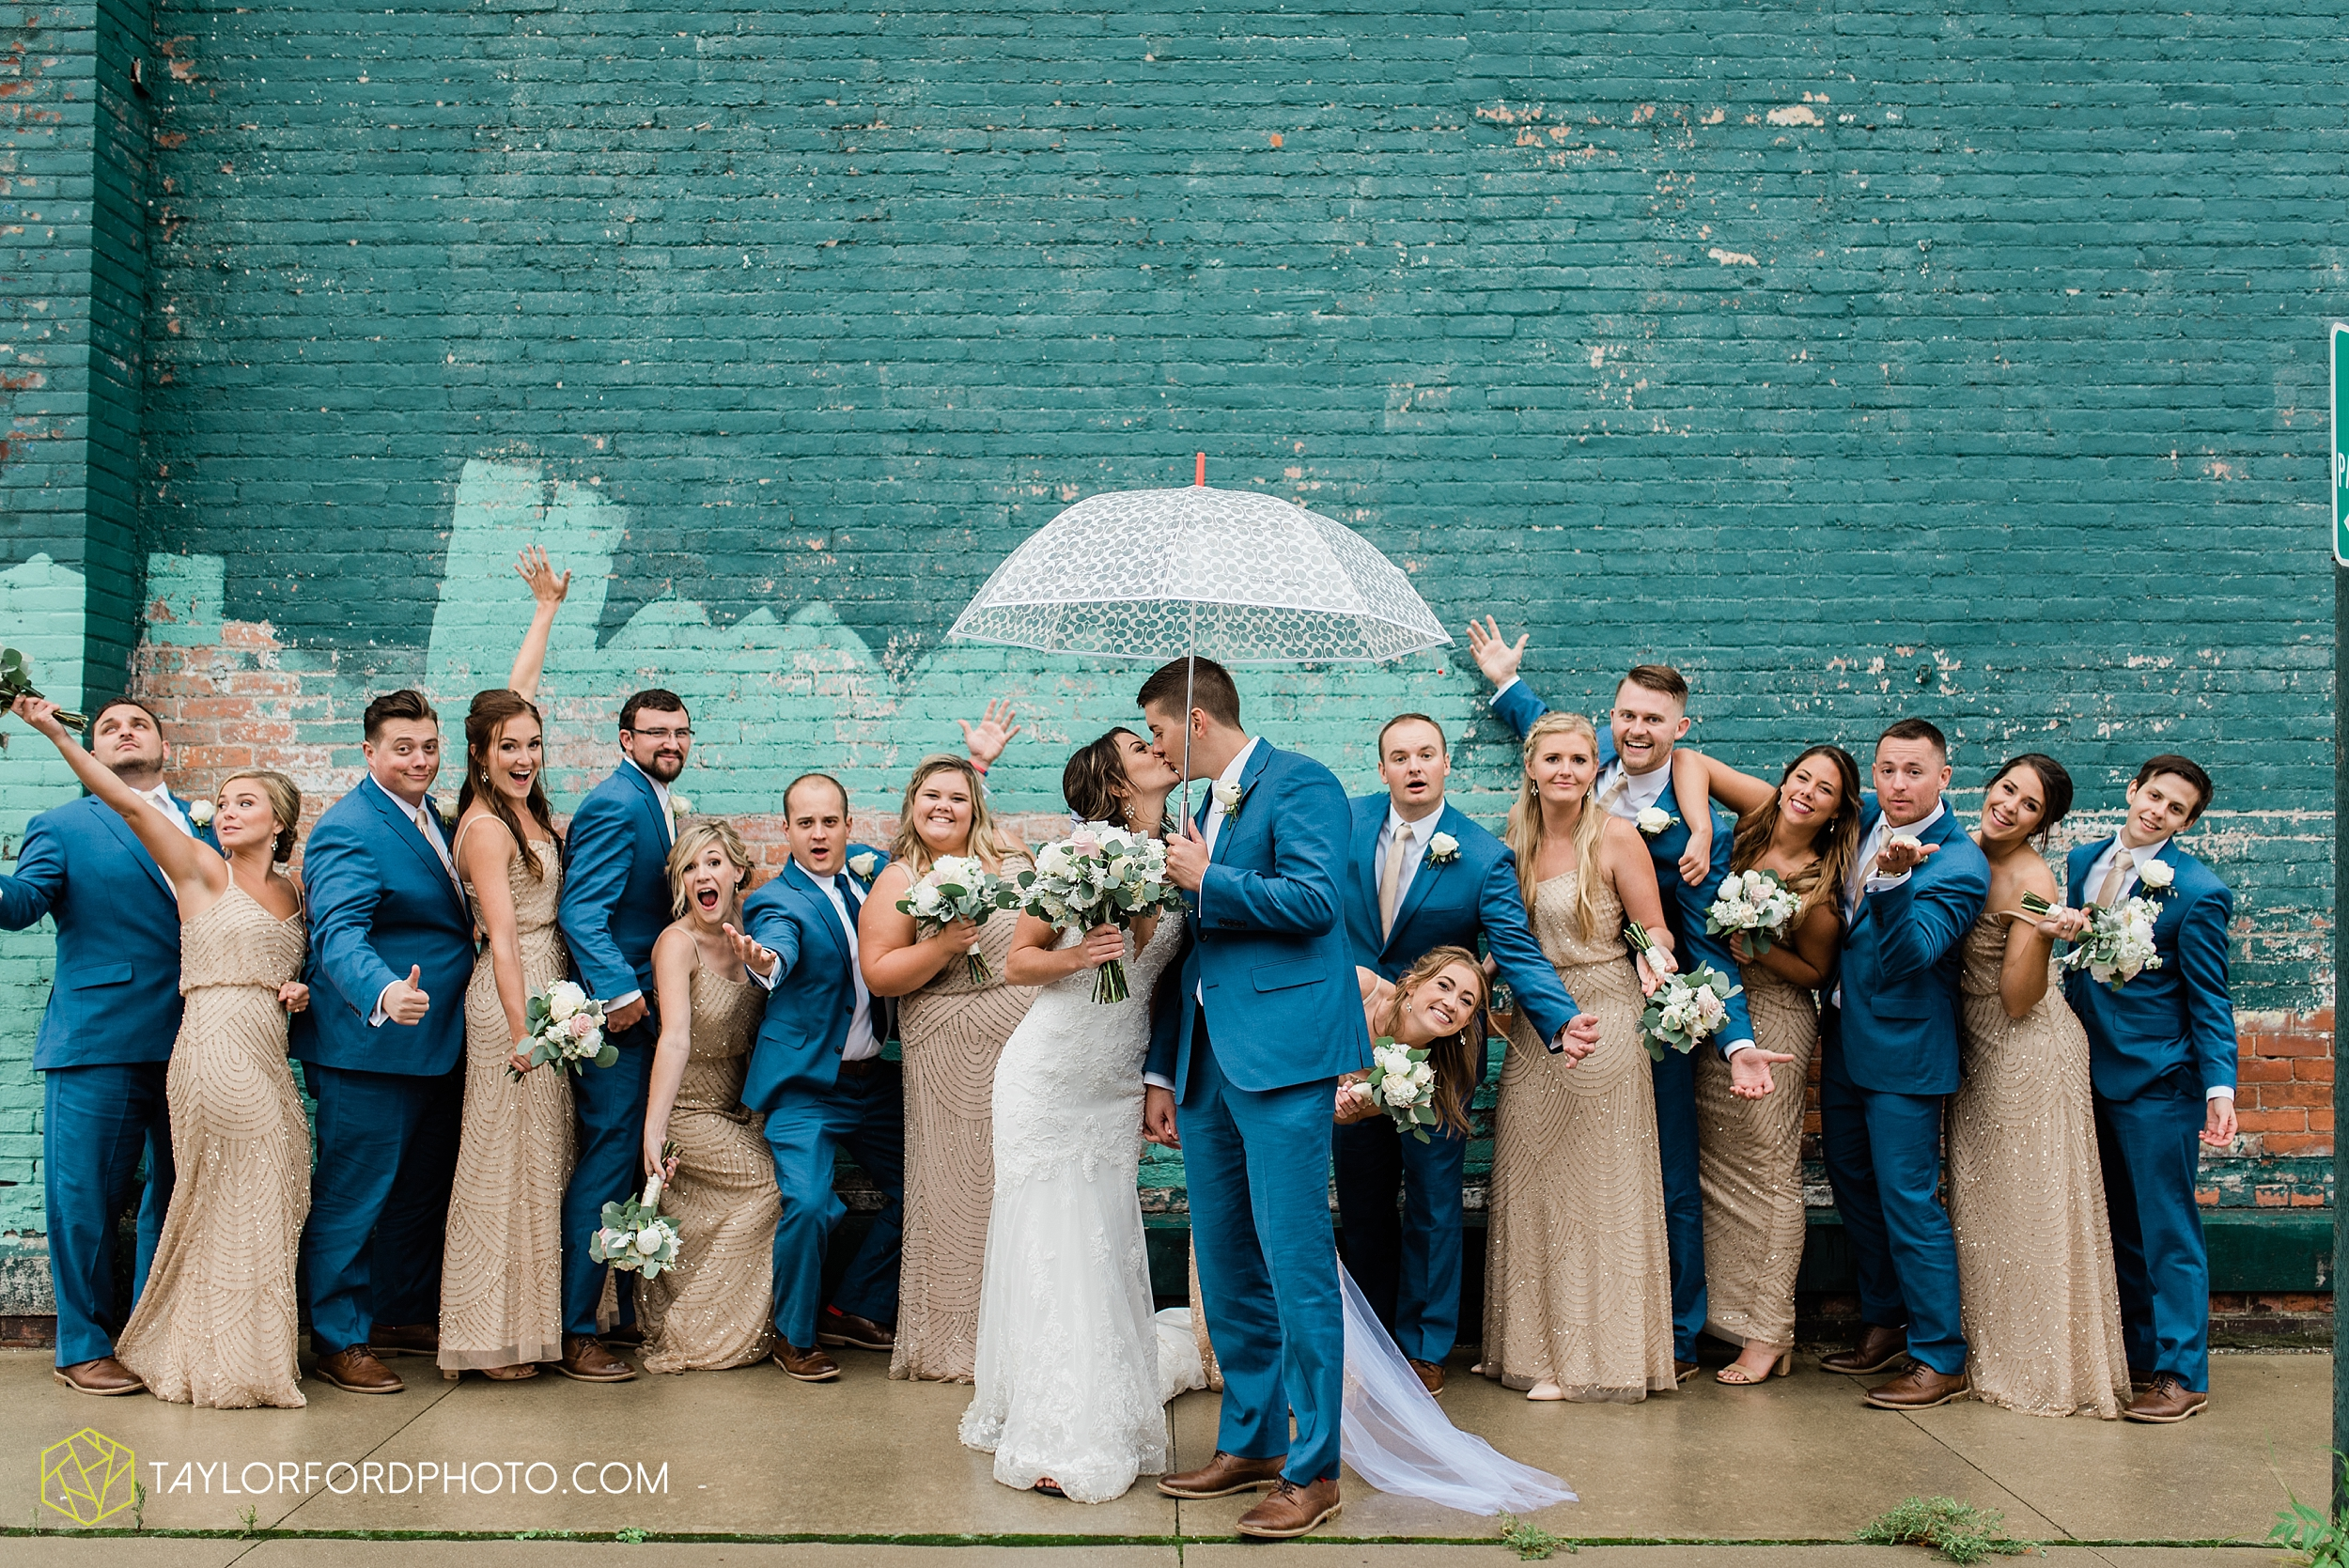 kacee-haden-sholl-second-story-saint-marys-knights-of-columbus-defiance-ohio-wedding-photographer-taylor-ford-photography_0184.jpg